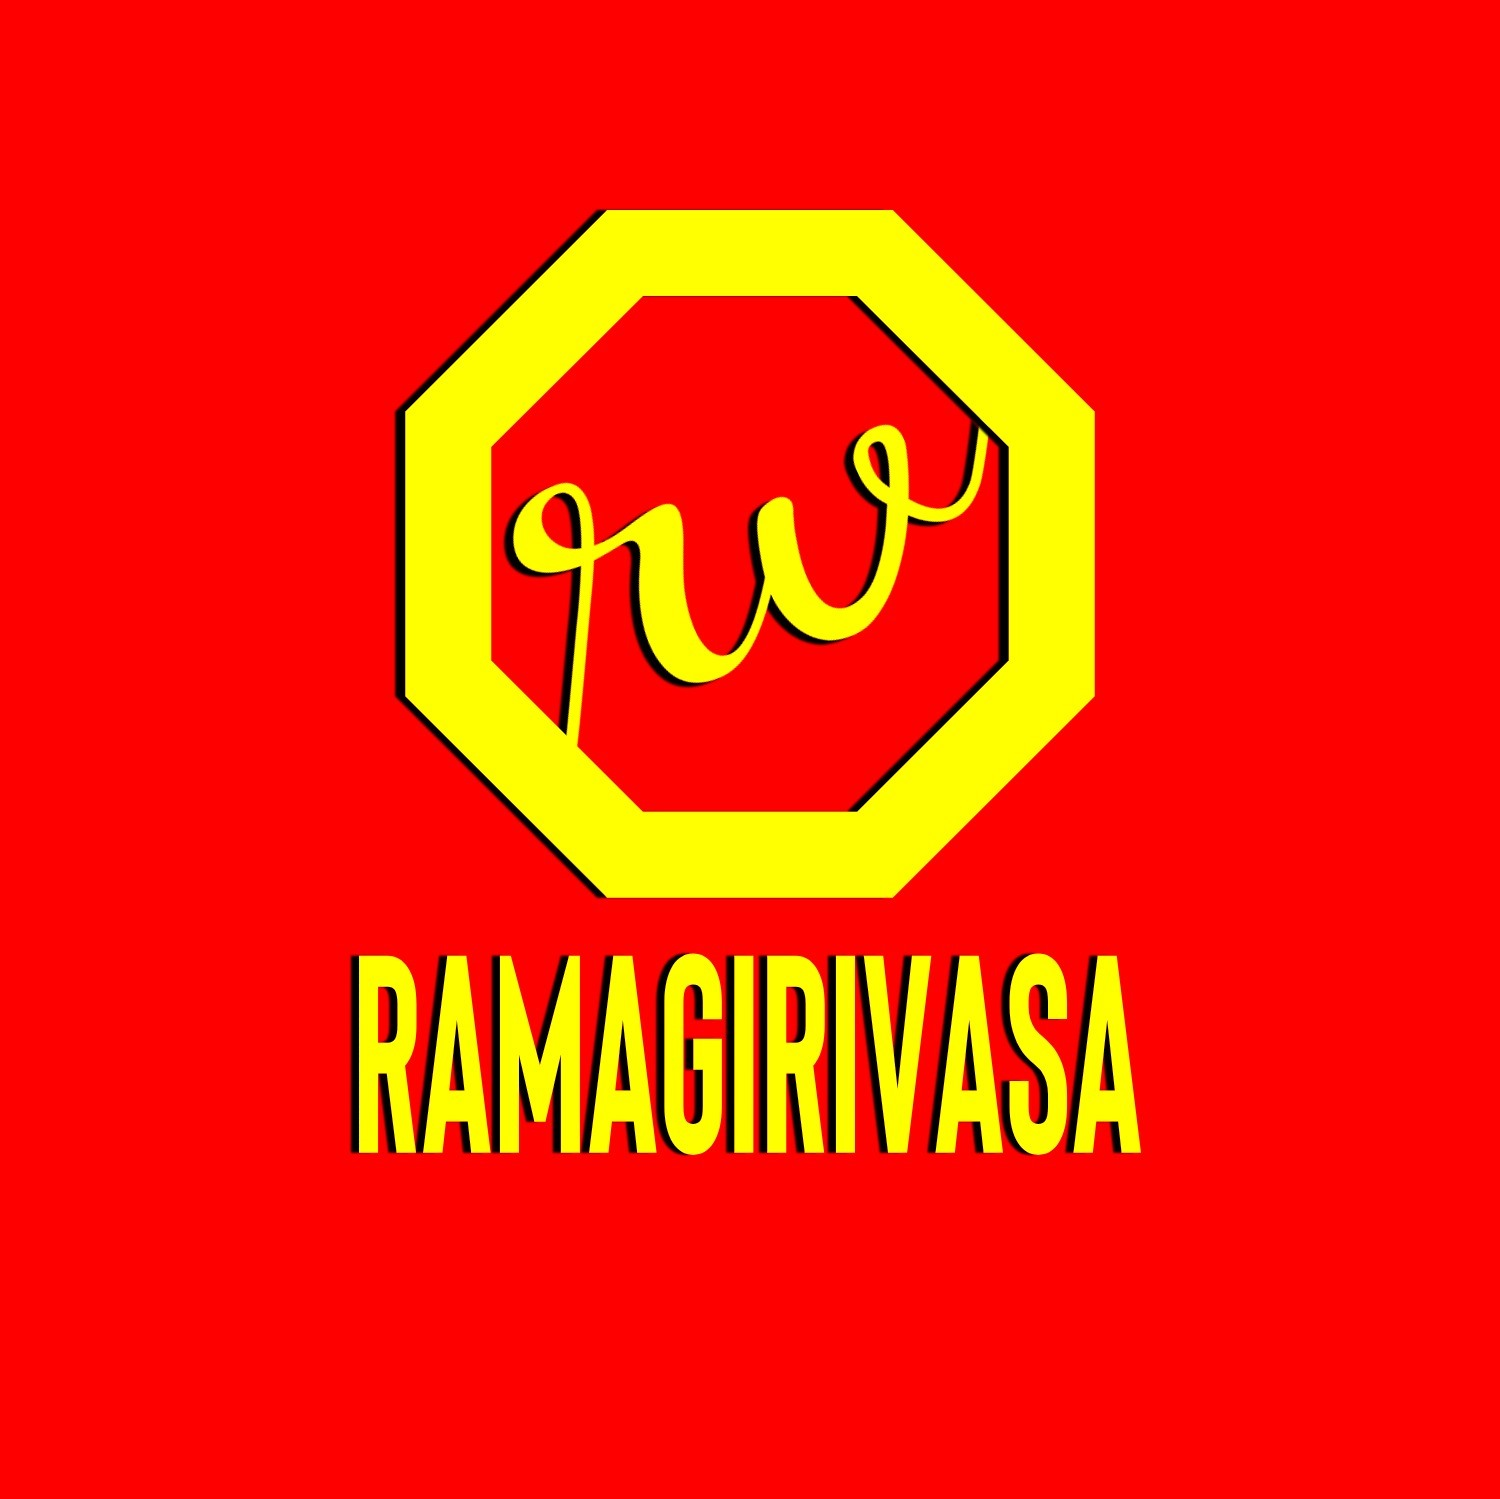 Ramagirivasa Enterprises